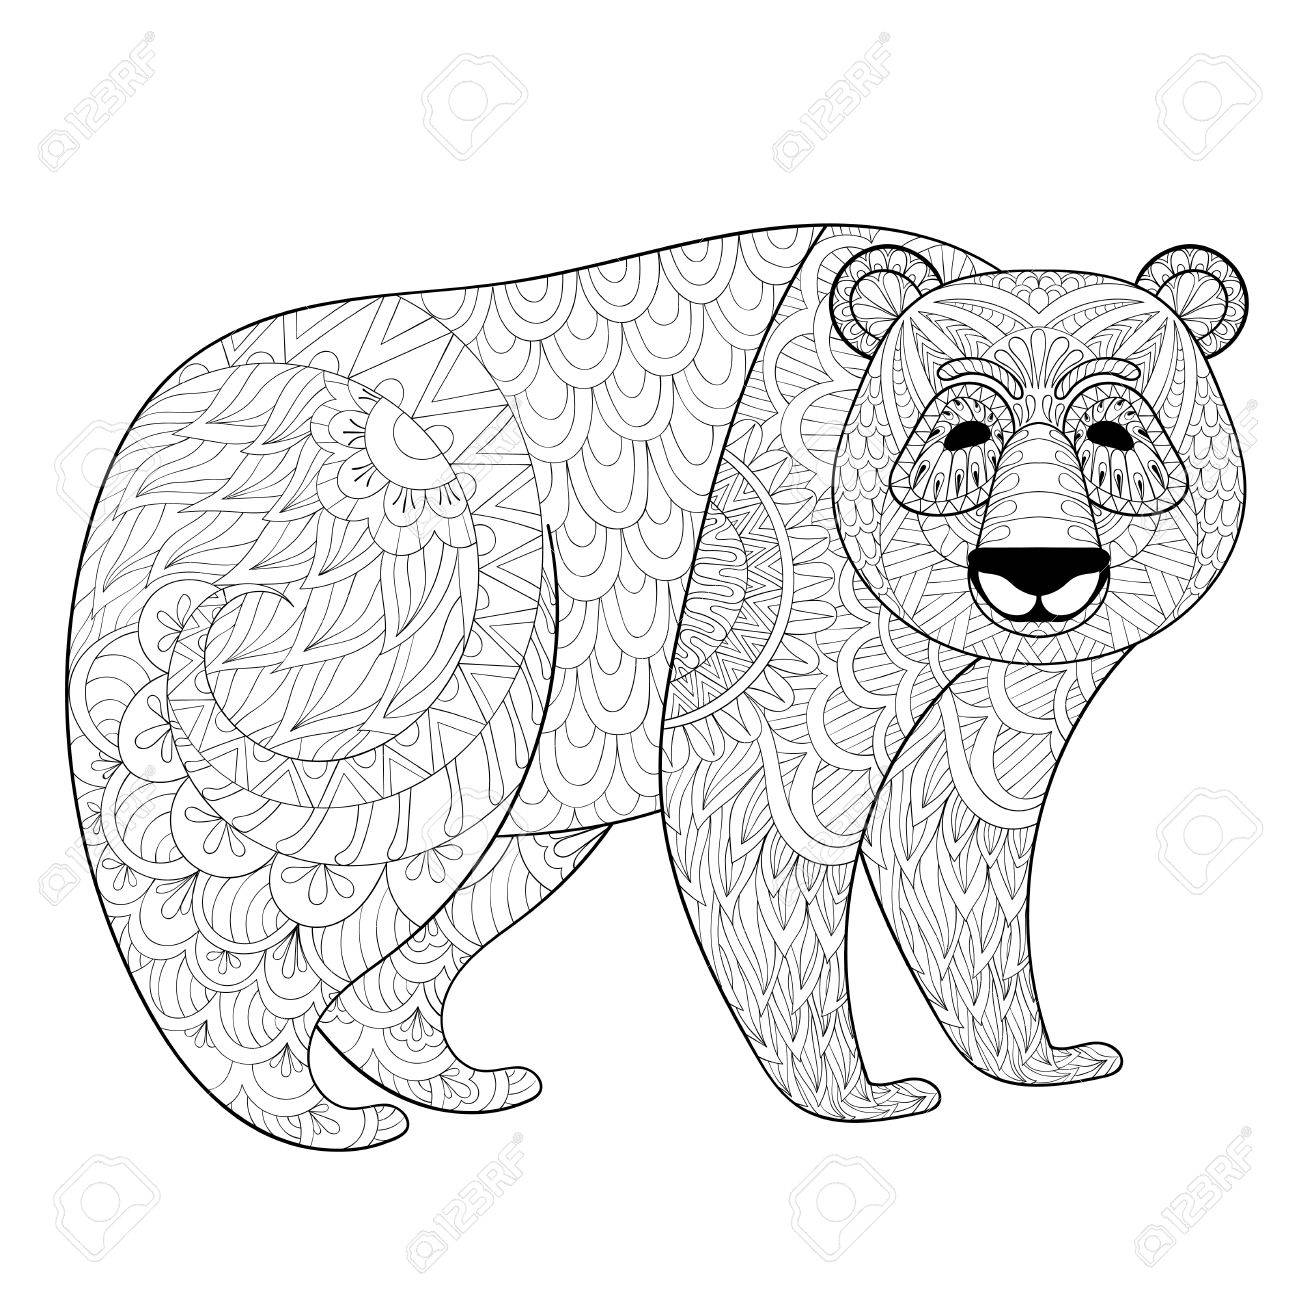 796a51b6bd468 Big Panda in zentangle, tribal style. Freehand ethnic sketch for adult  coloring book with